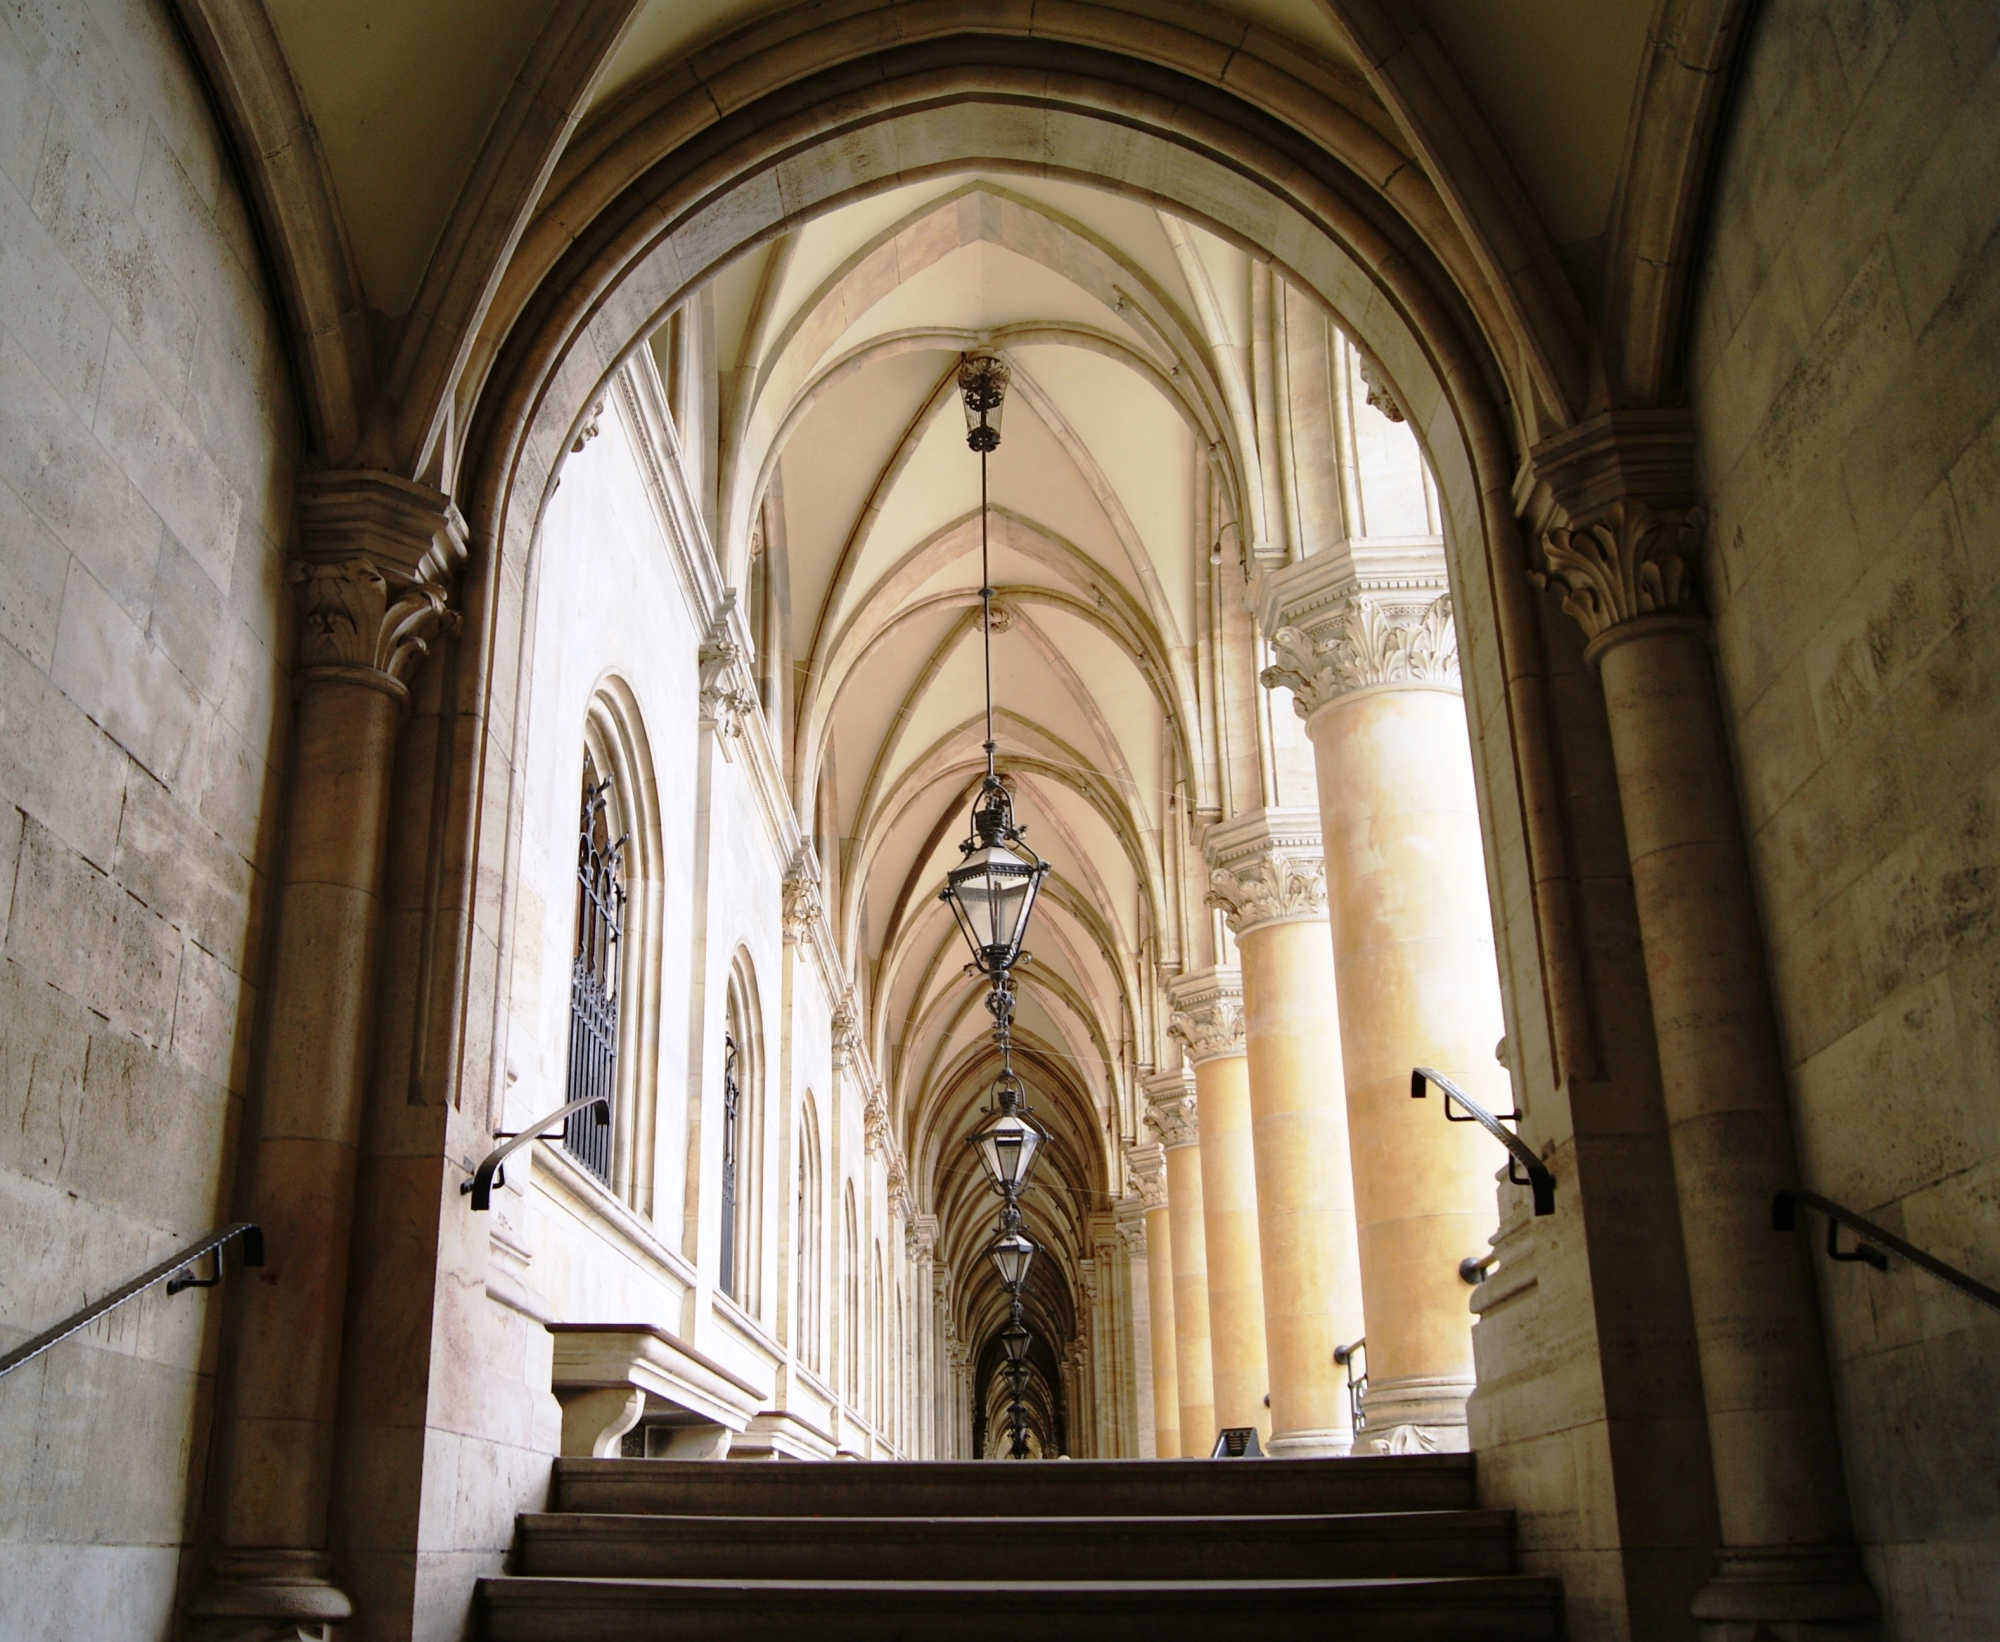 Arches of the Rathaus